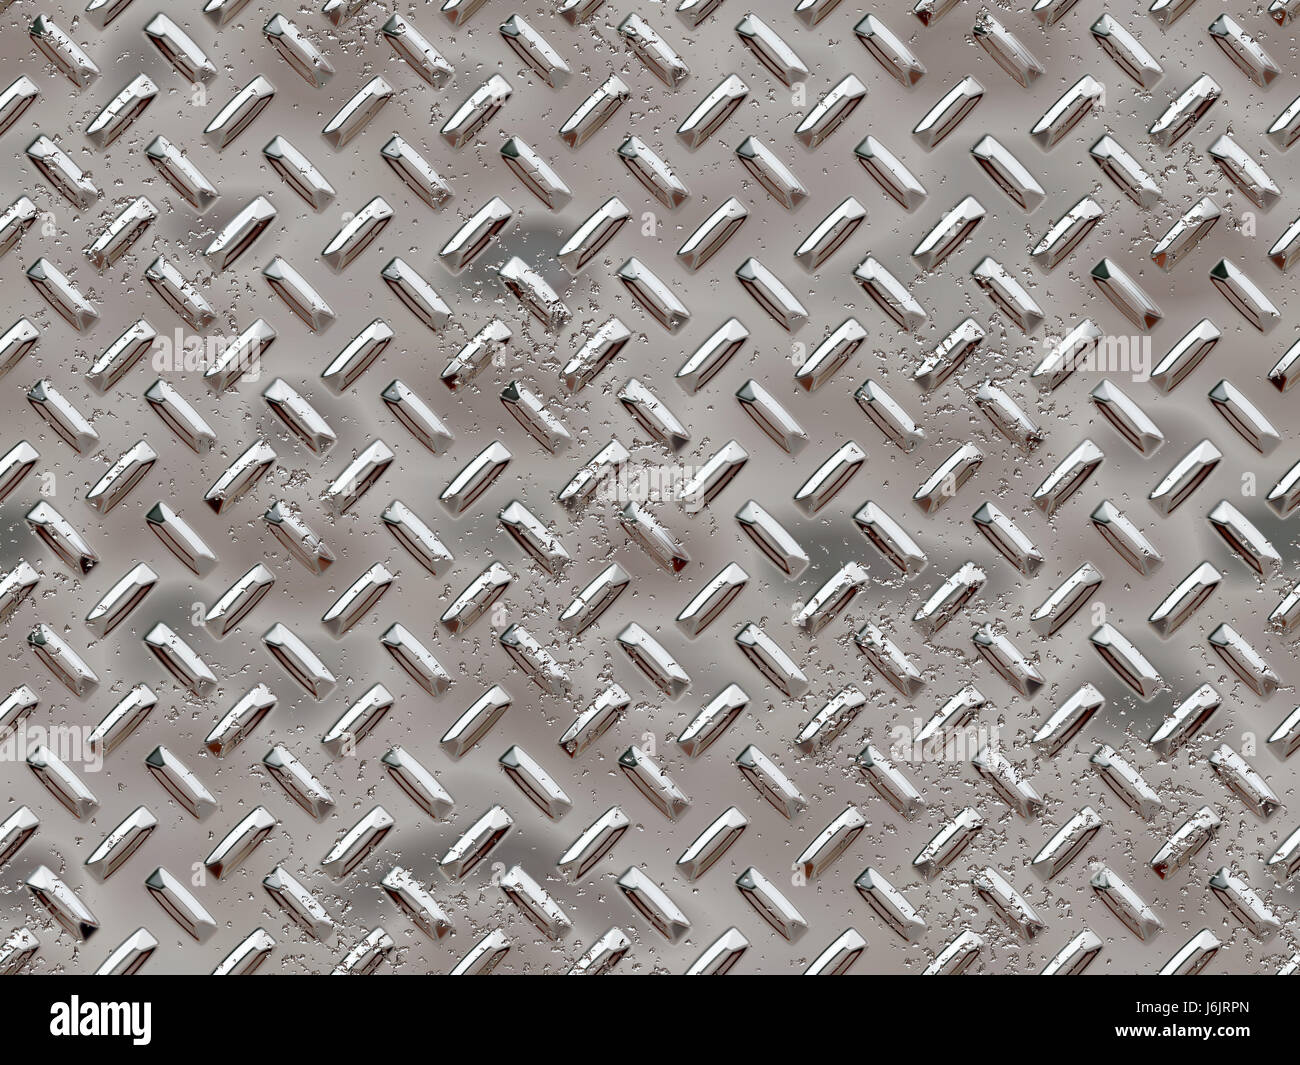 Dent Dented Stock Photos & Dent Dented Stock Images - Alamy